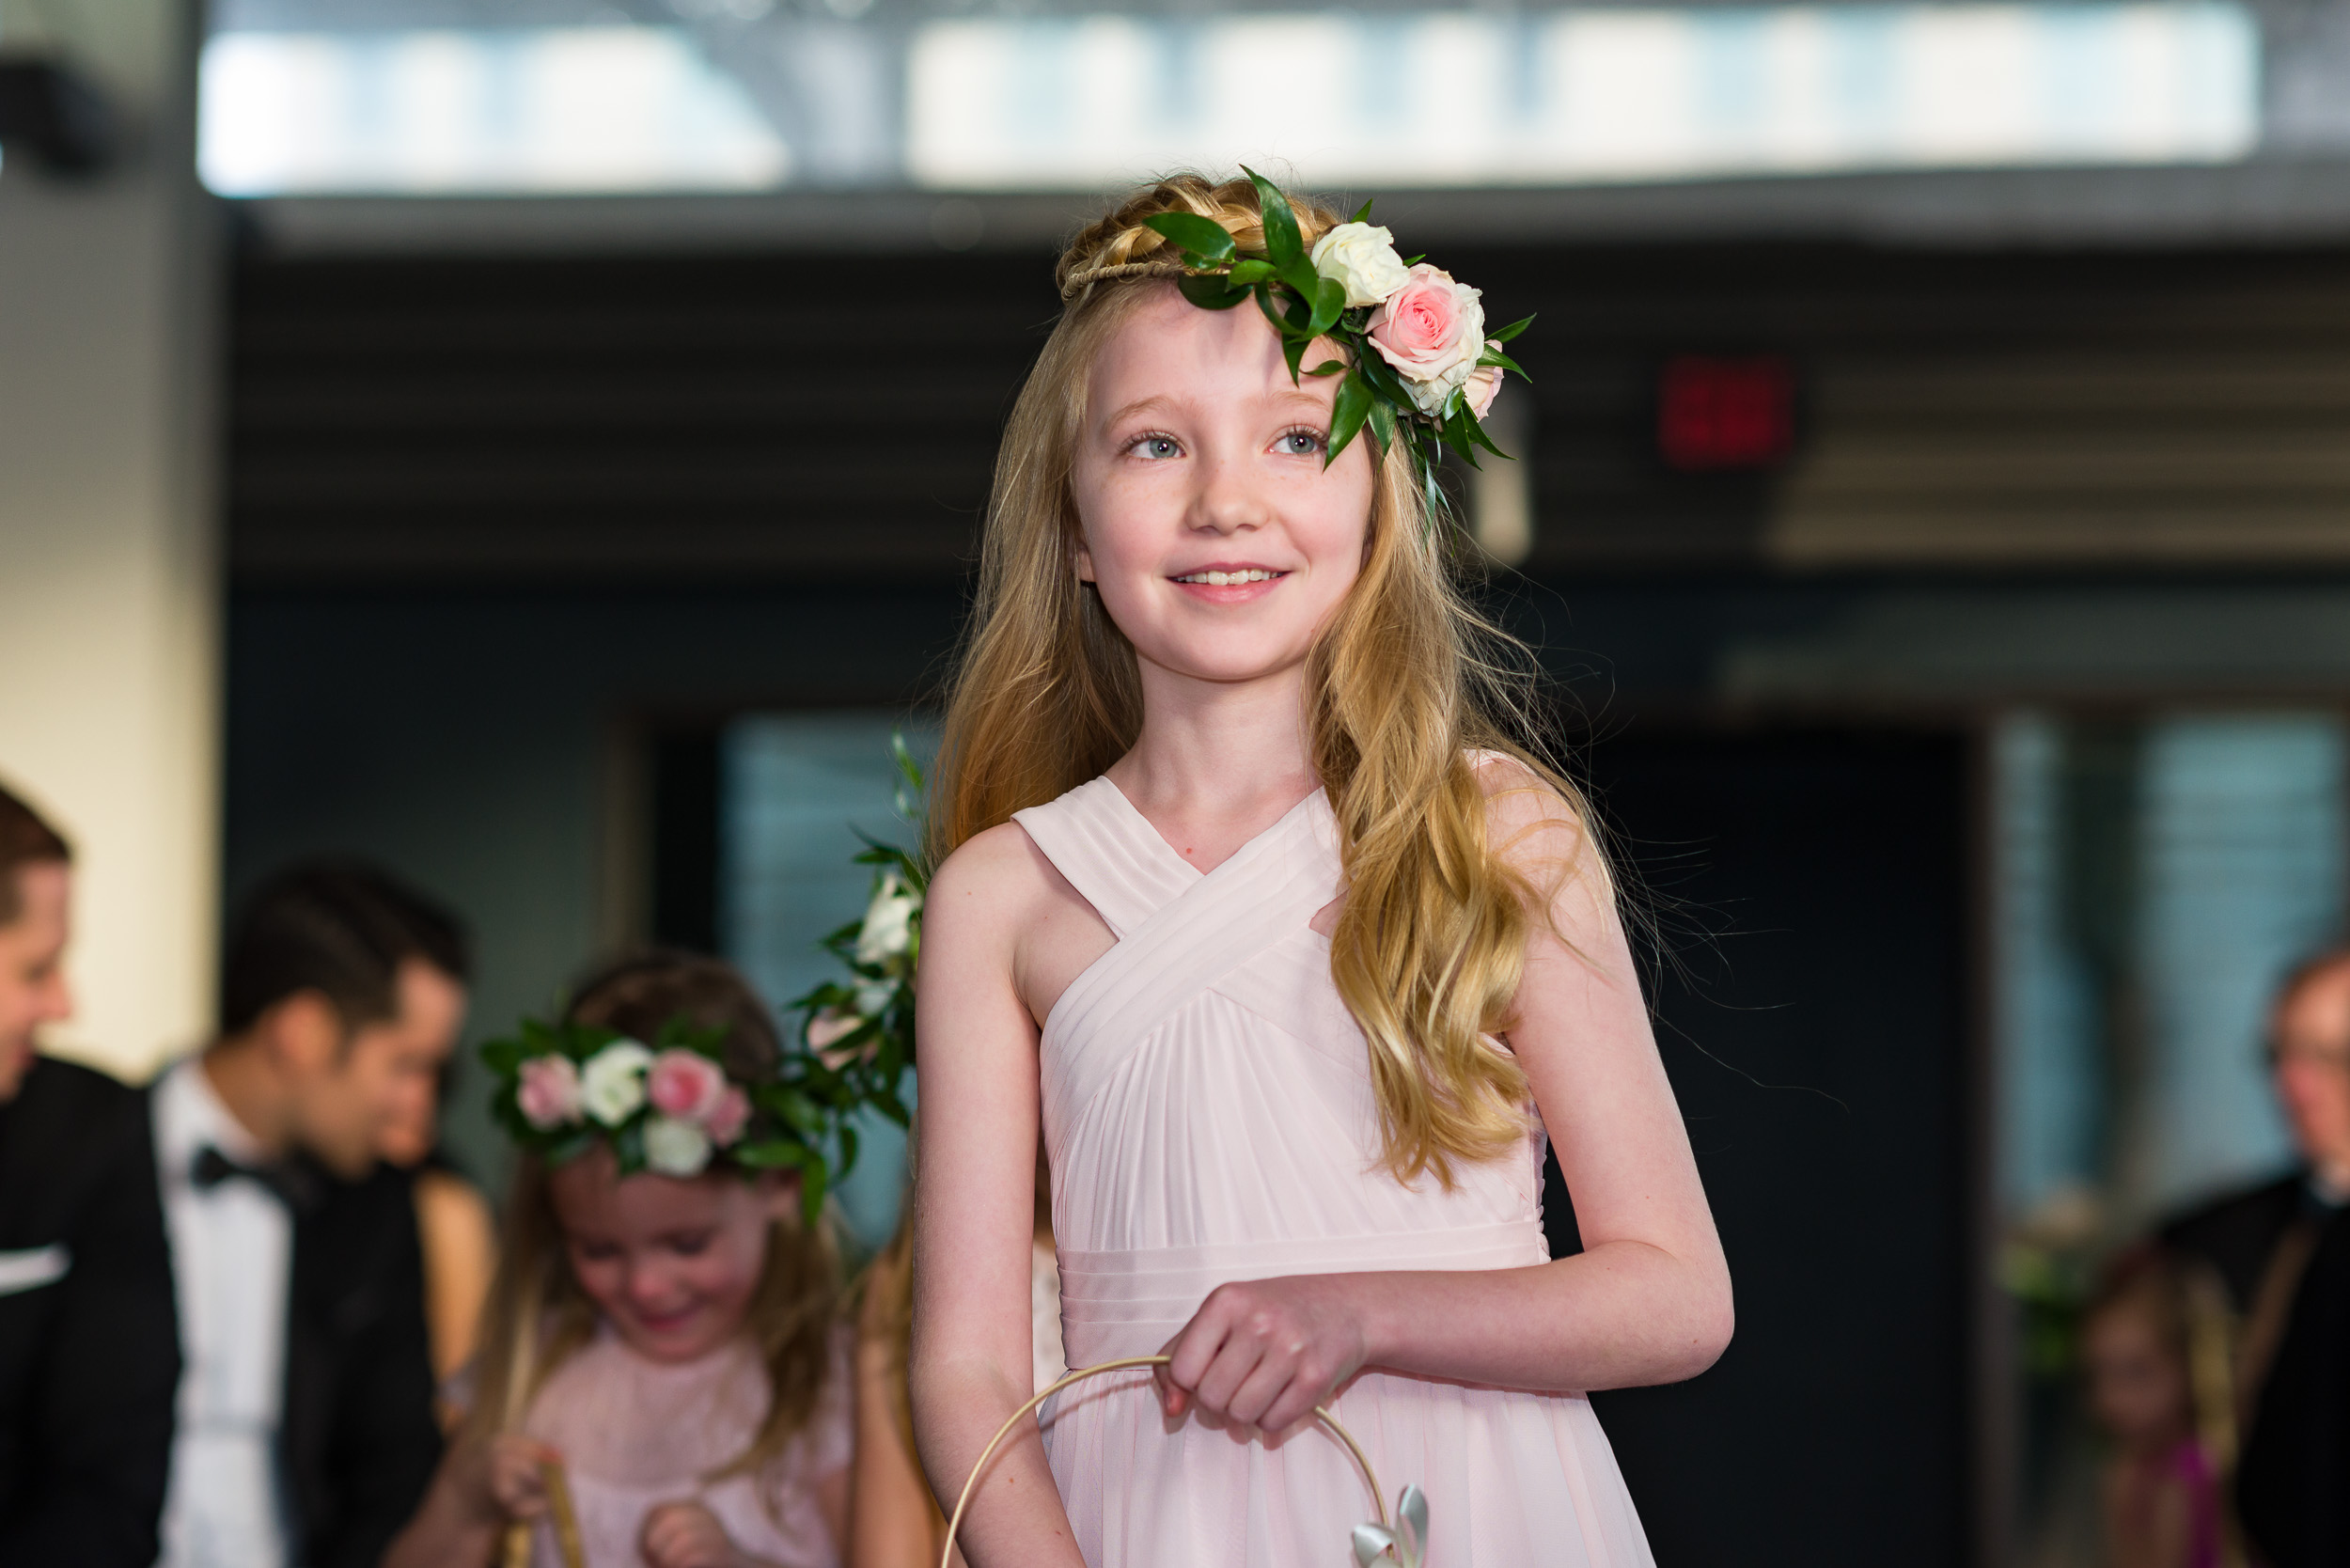 Austin-wedding-photographers-brazos-hall-downtown-flower-girl-wreath-headband-roses